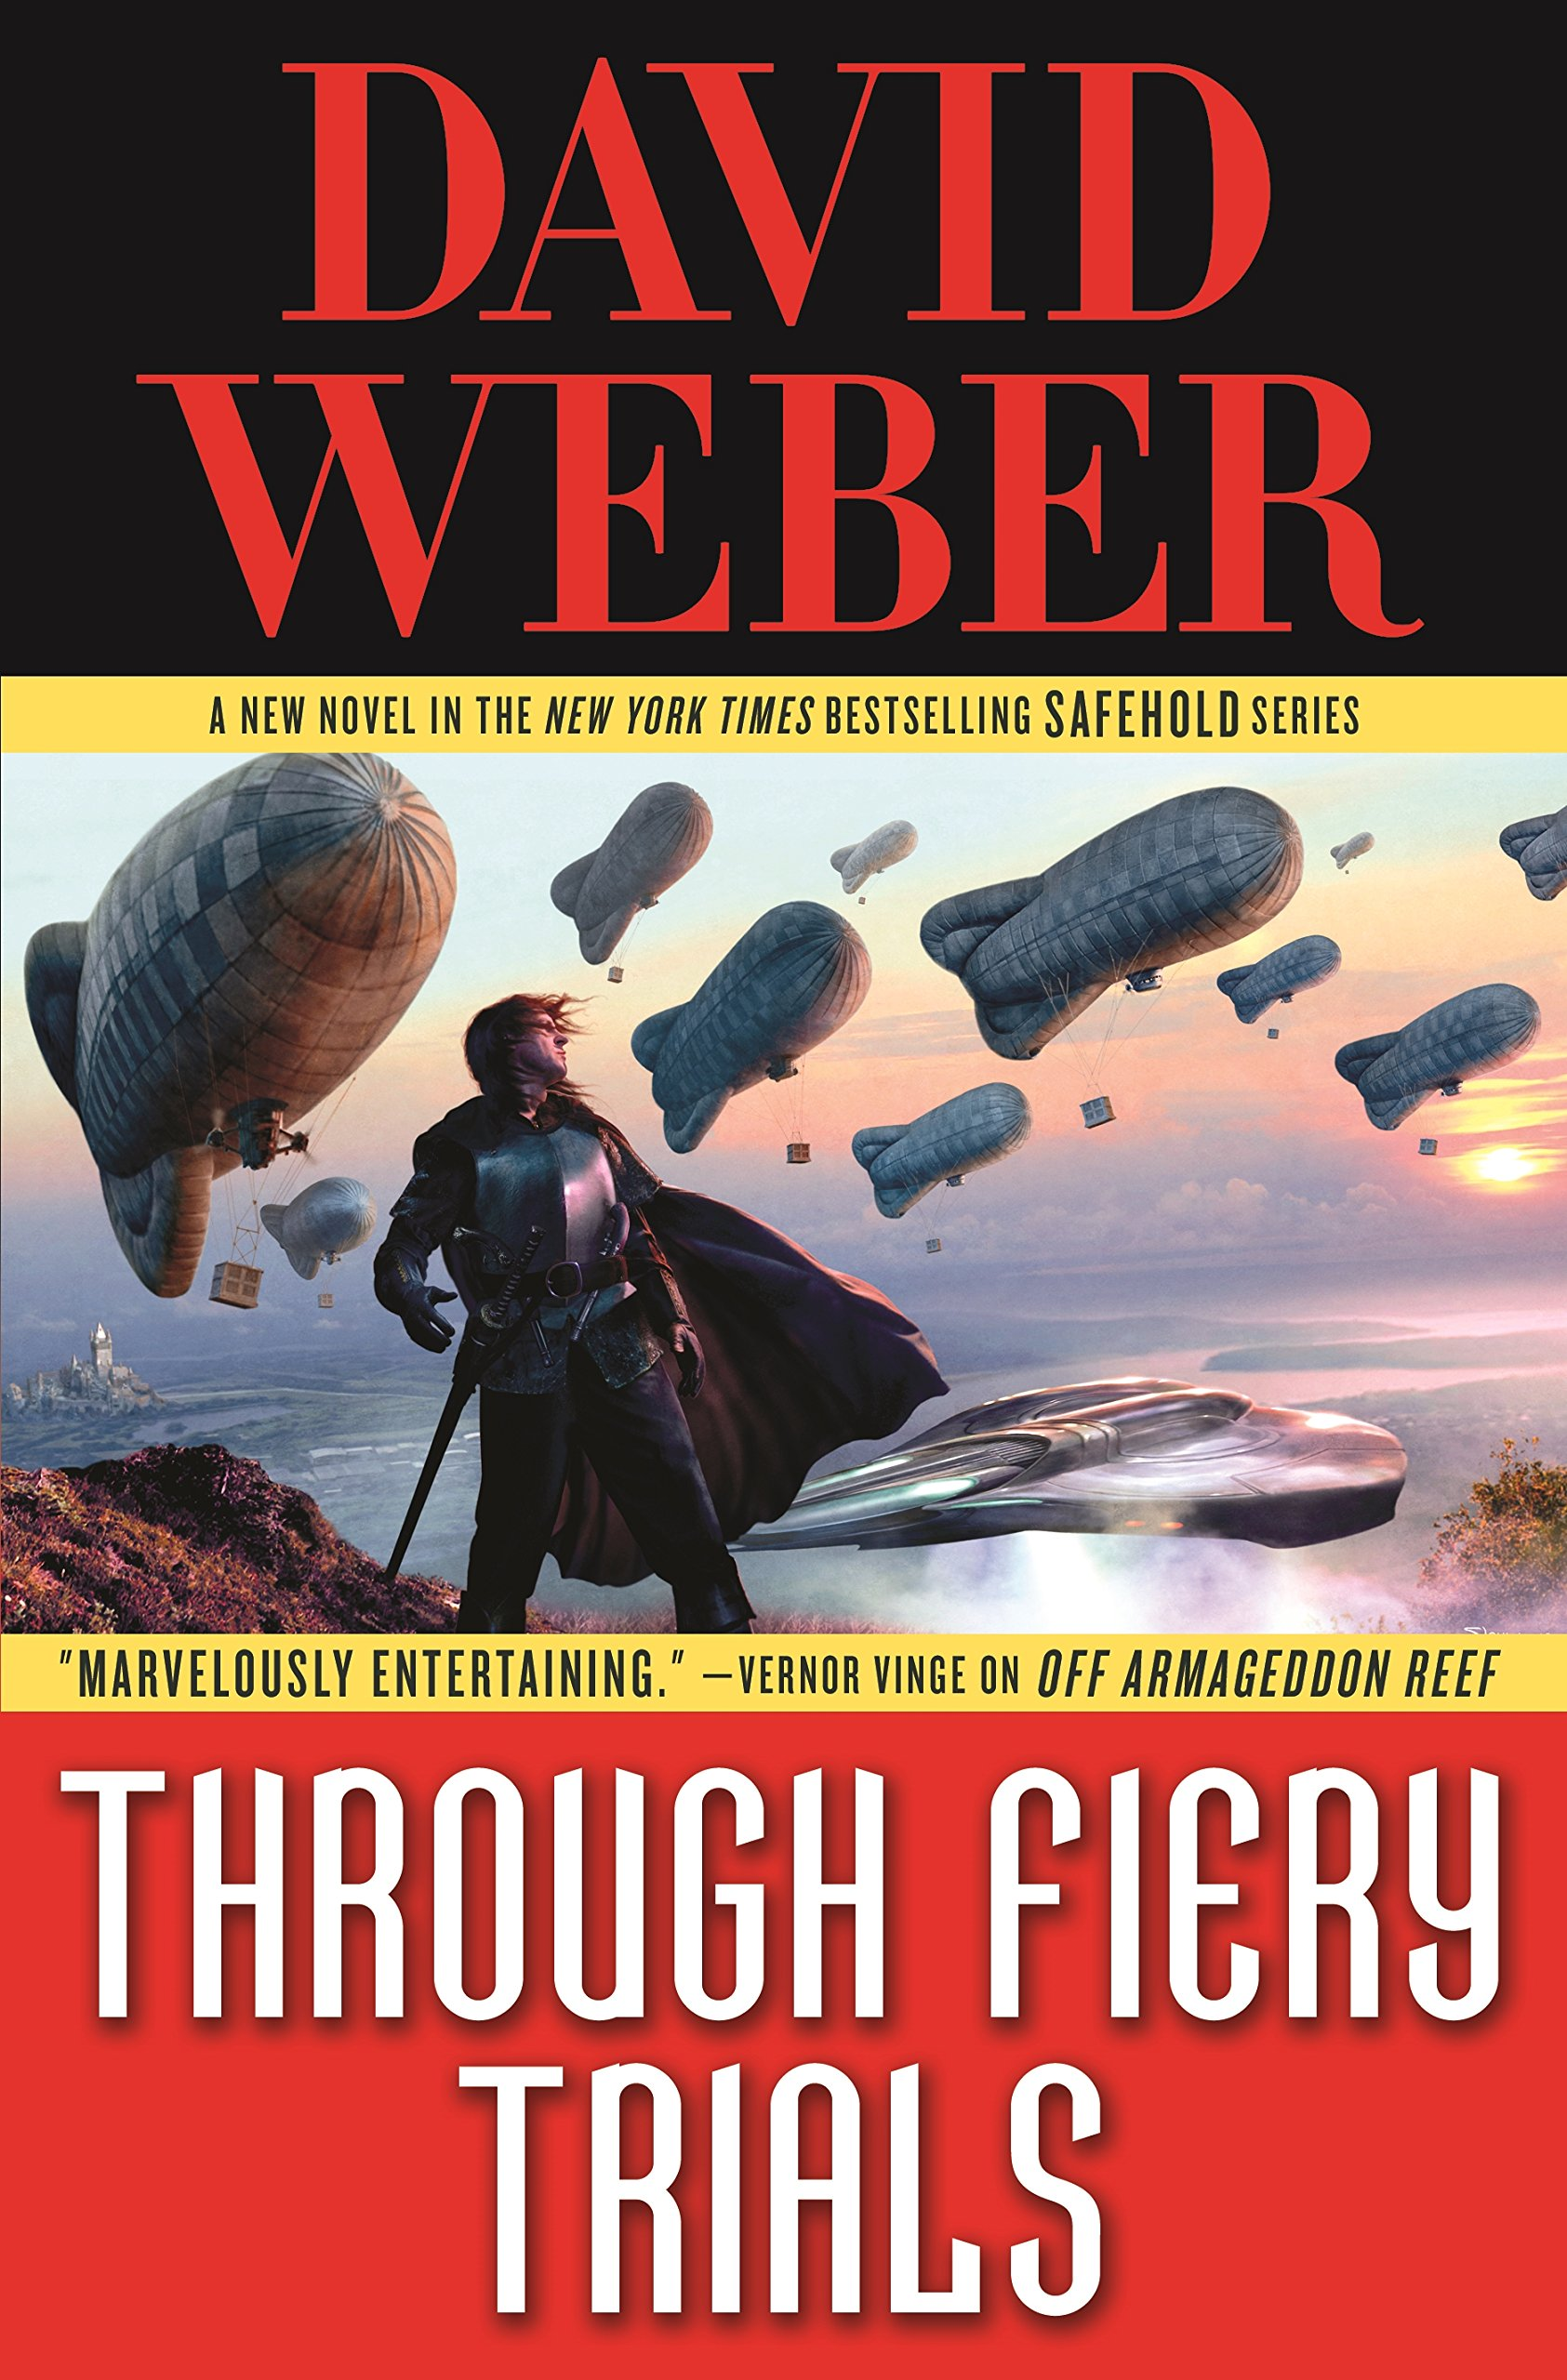 Through Fiery Trials by David Weber book cover